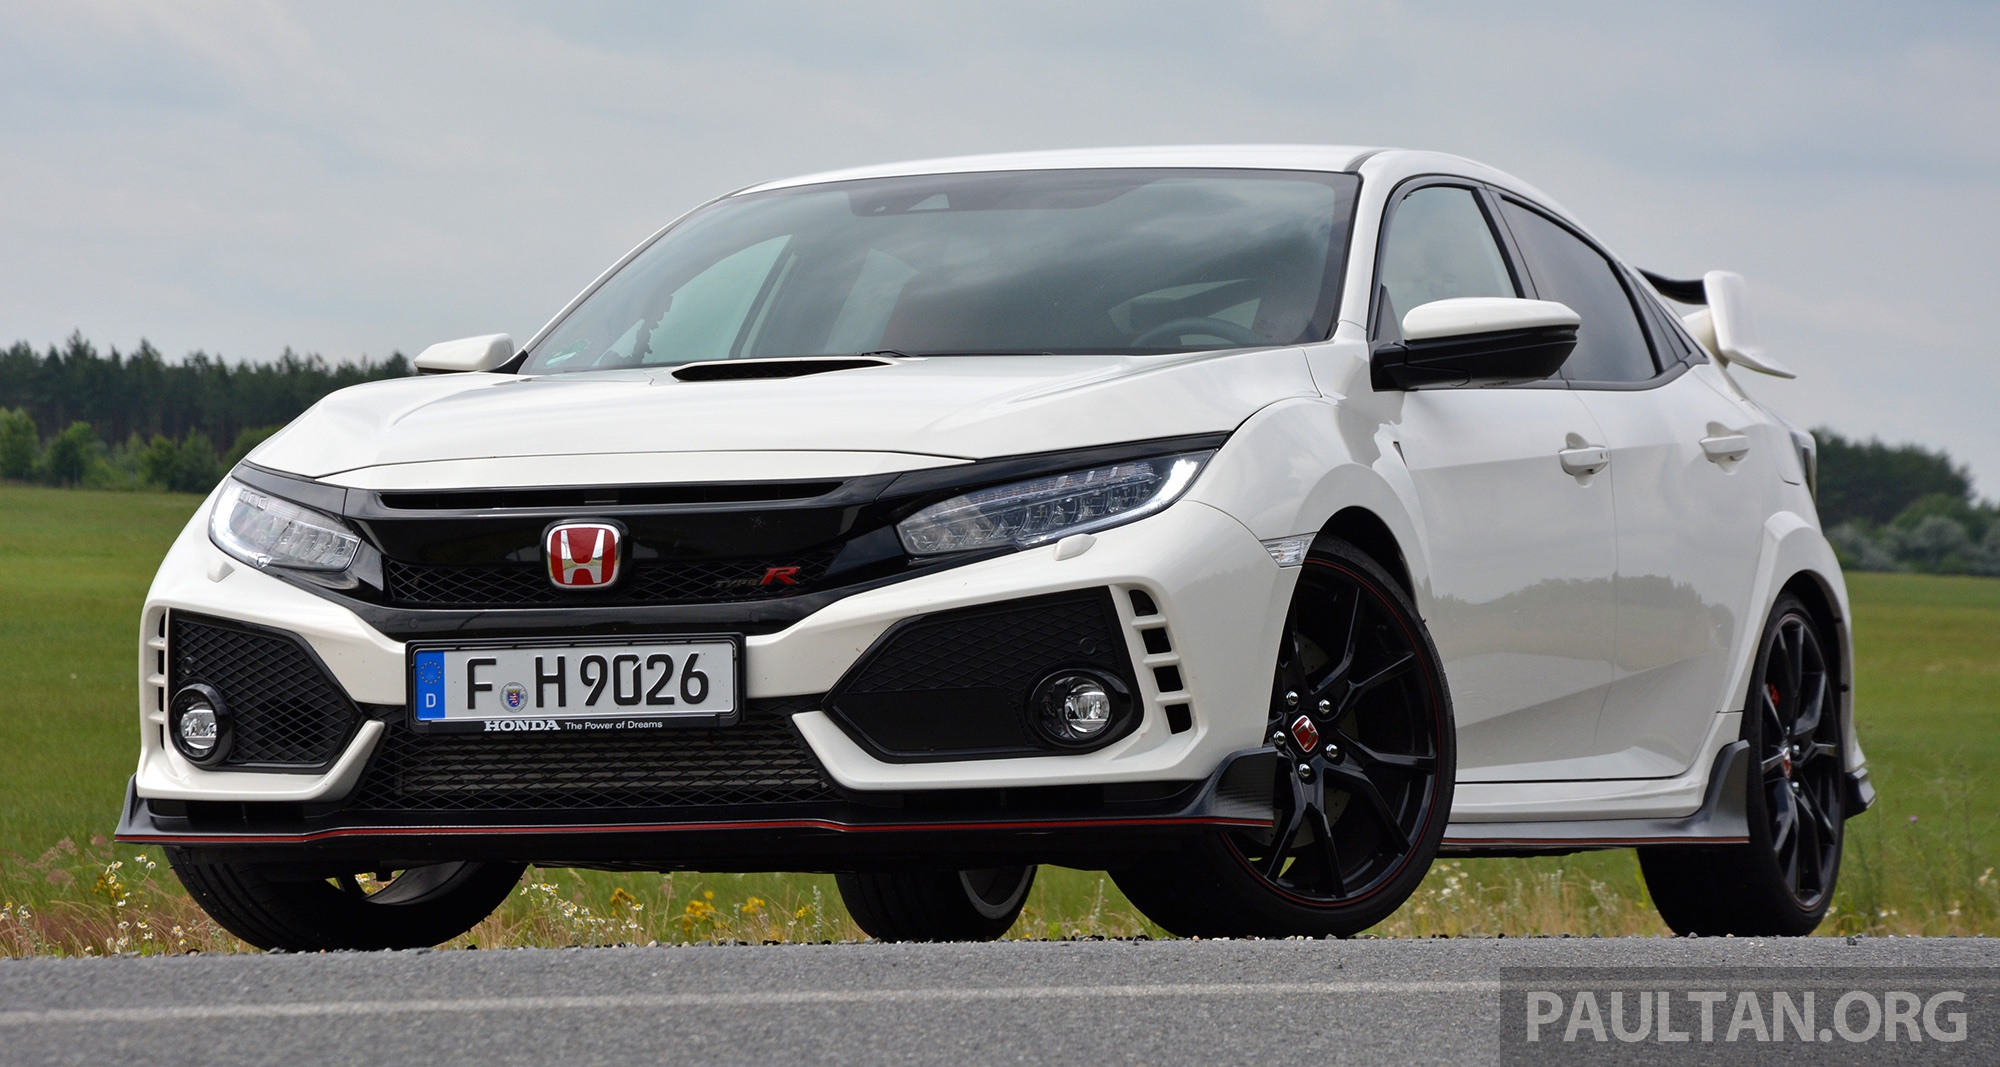 Driven 2017 Fk8 Honda Civic Type R Paradigm Shift Paul